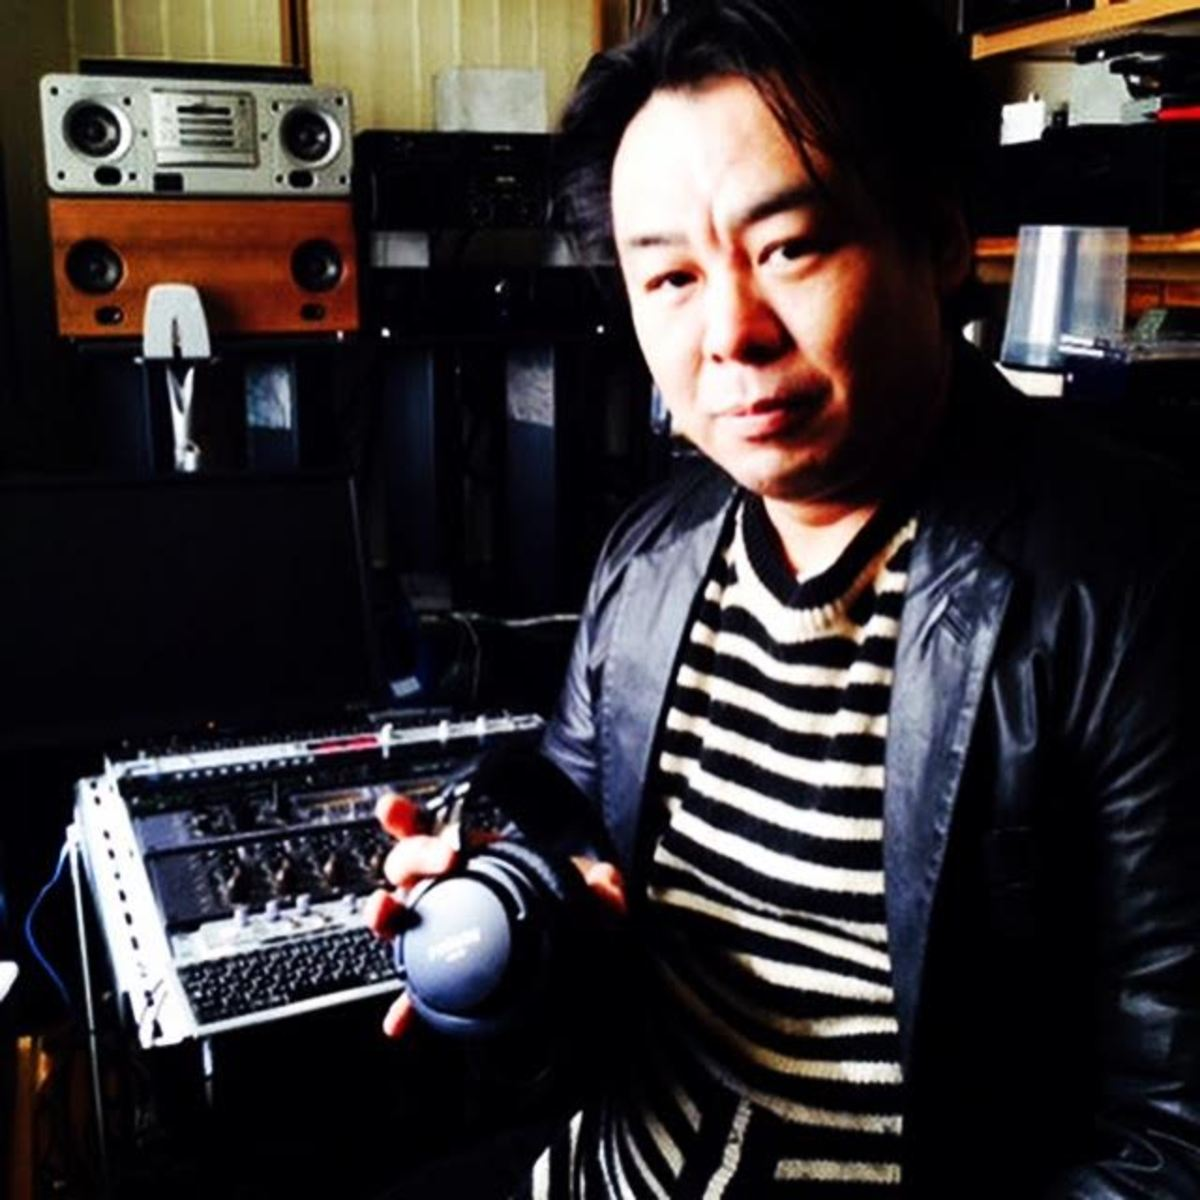 Isao Kumano in the studio with the SMB-01